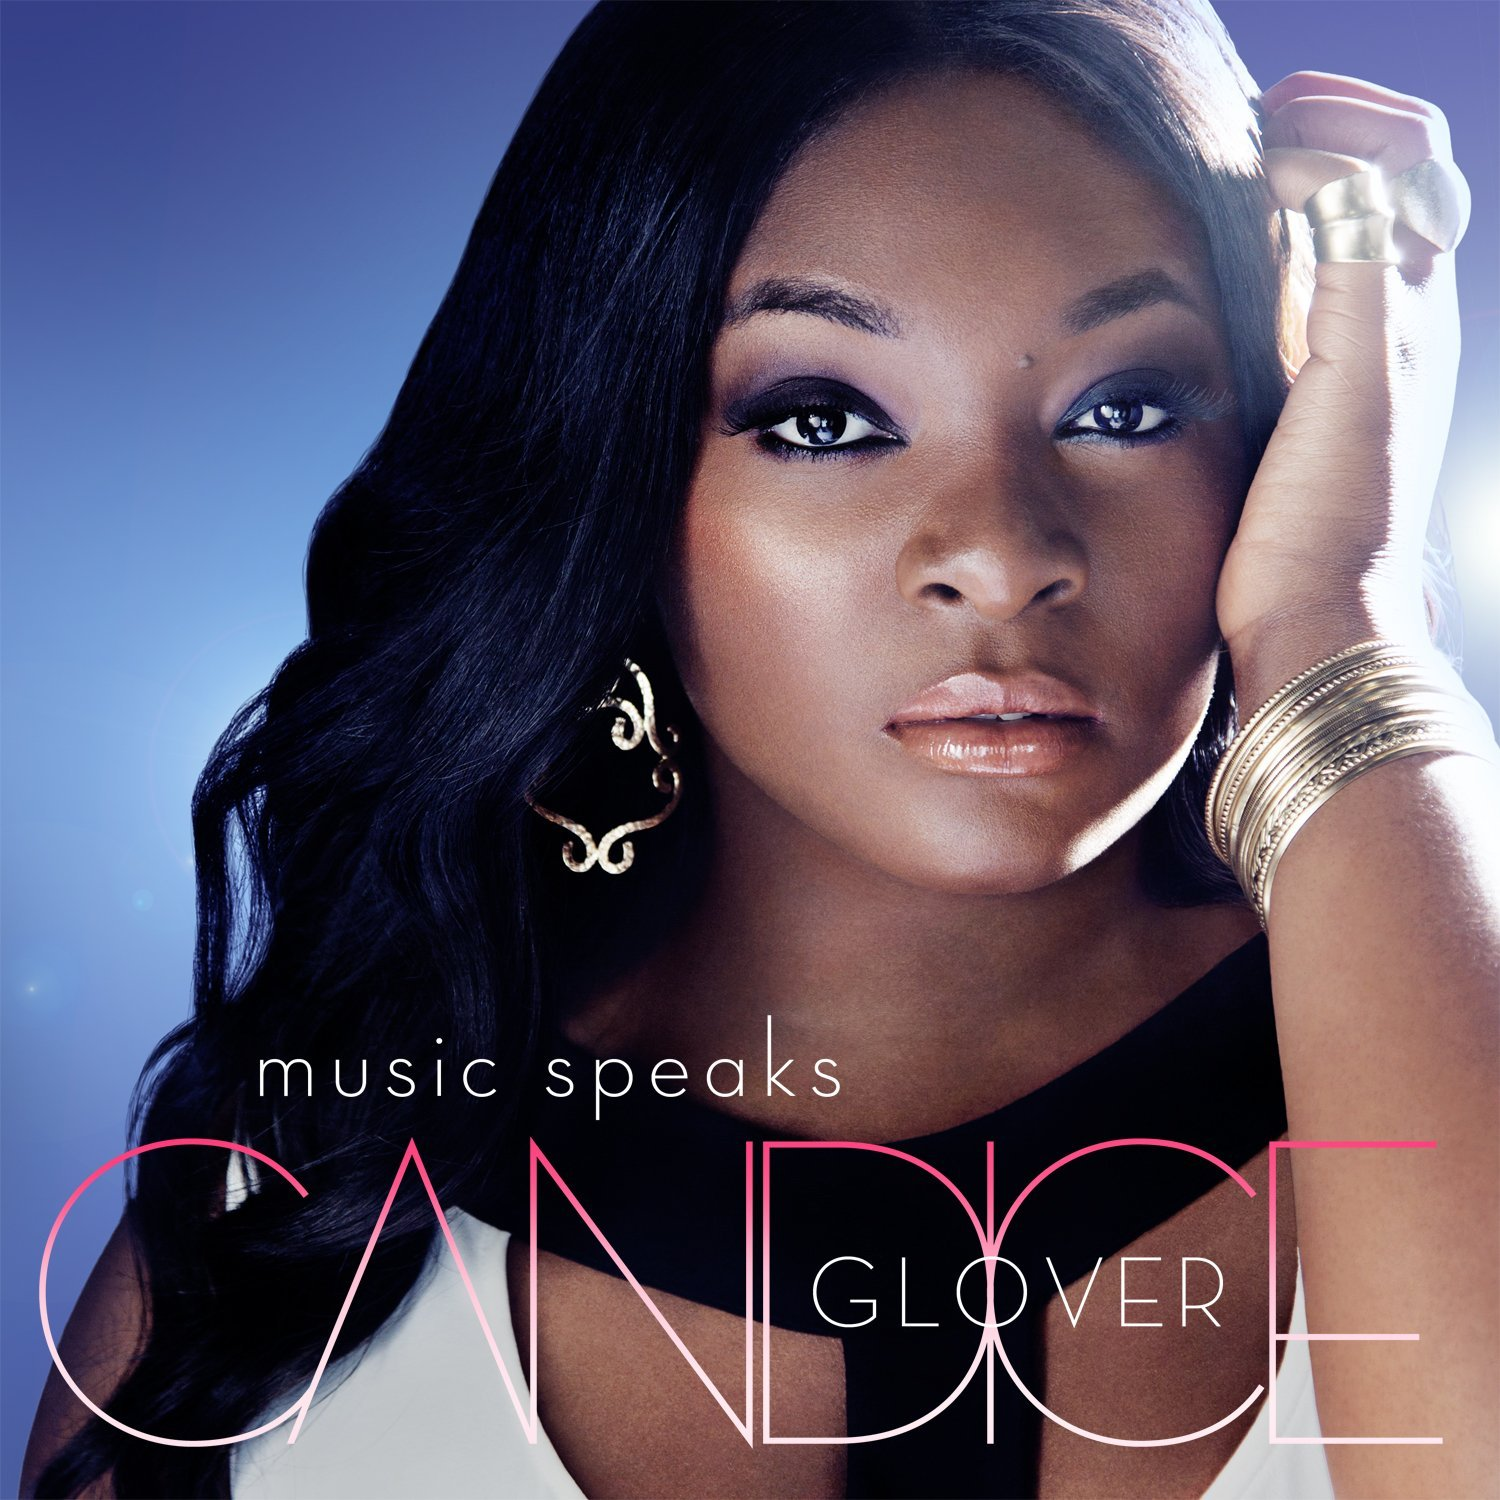 Candice Glover Finally Releases Debut Album 'Music Speaks'